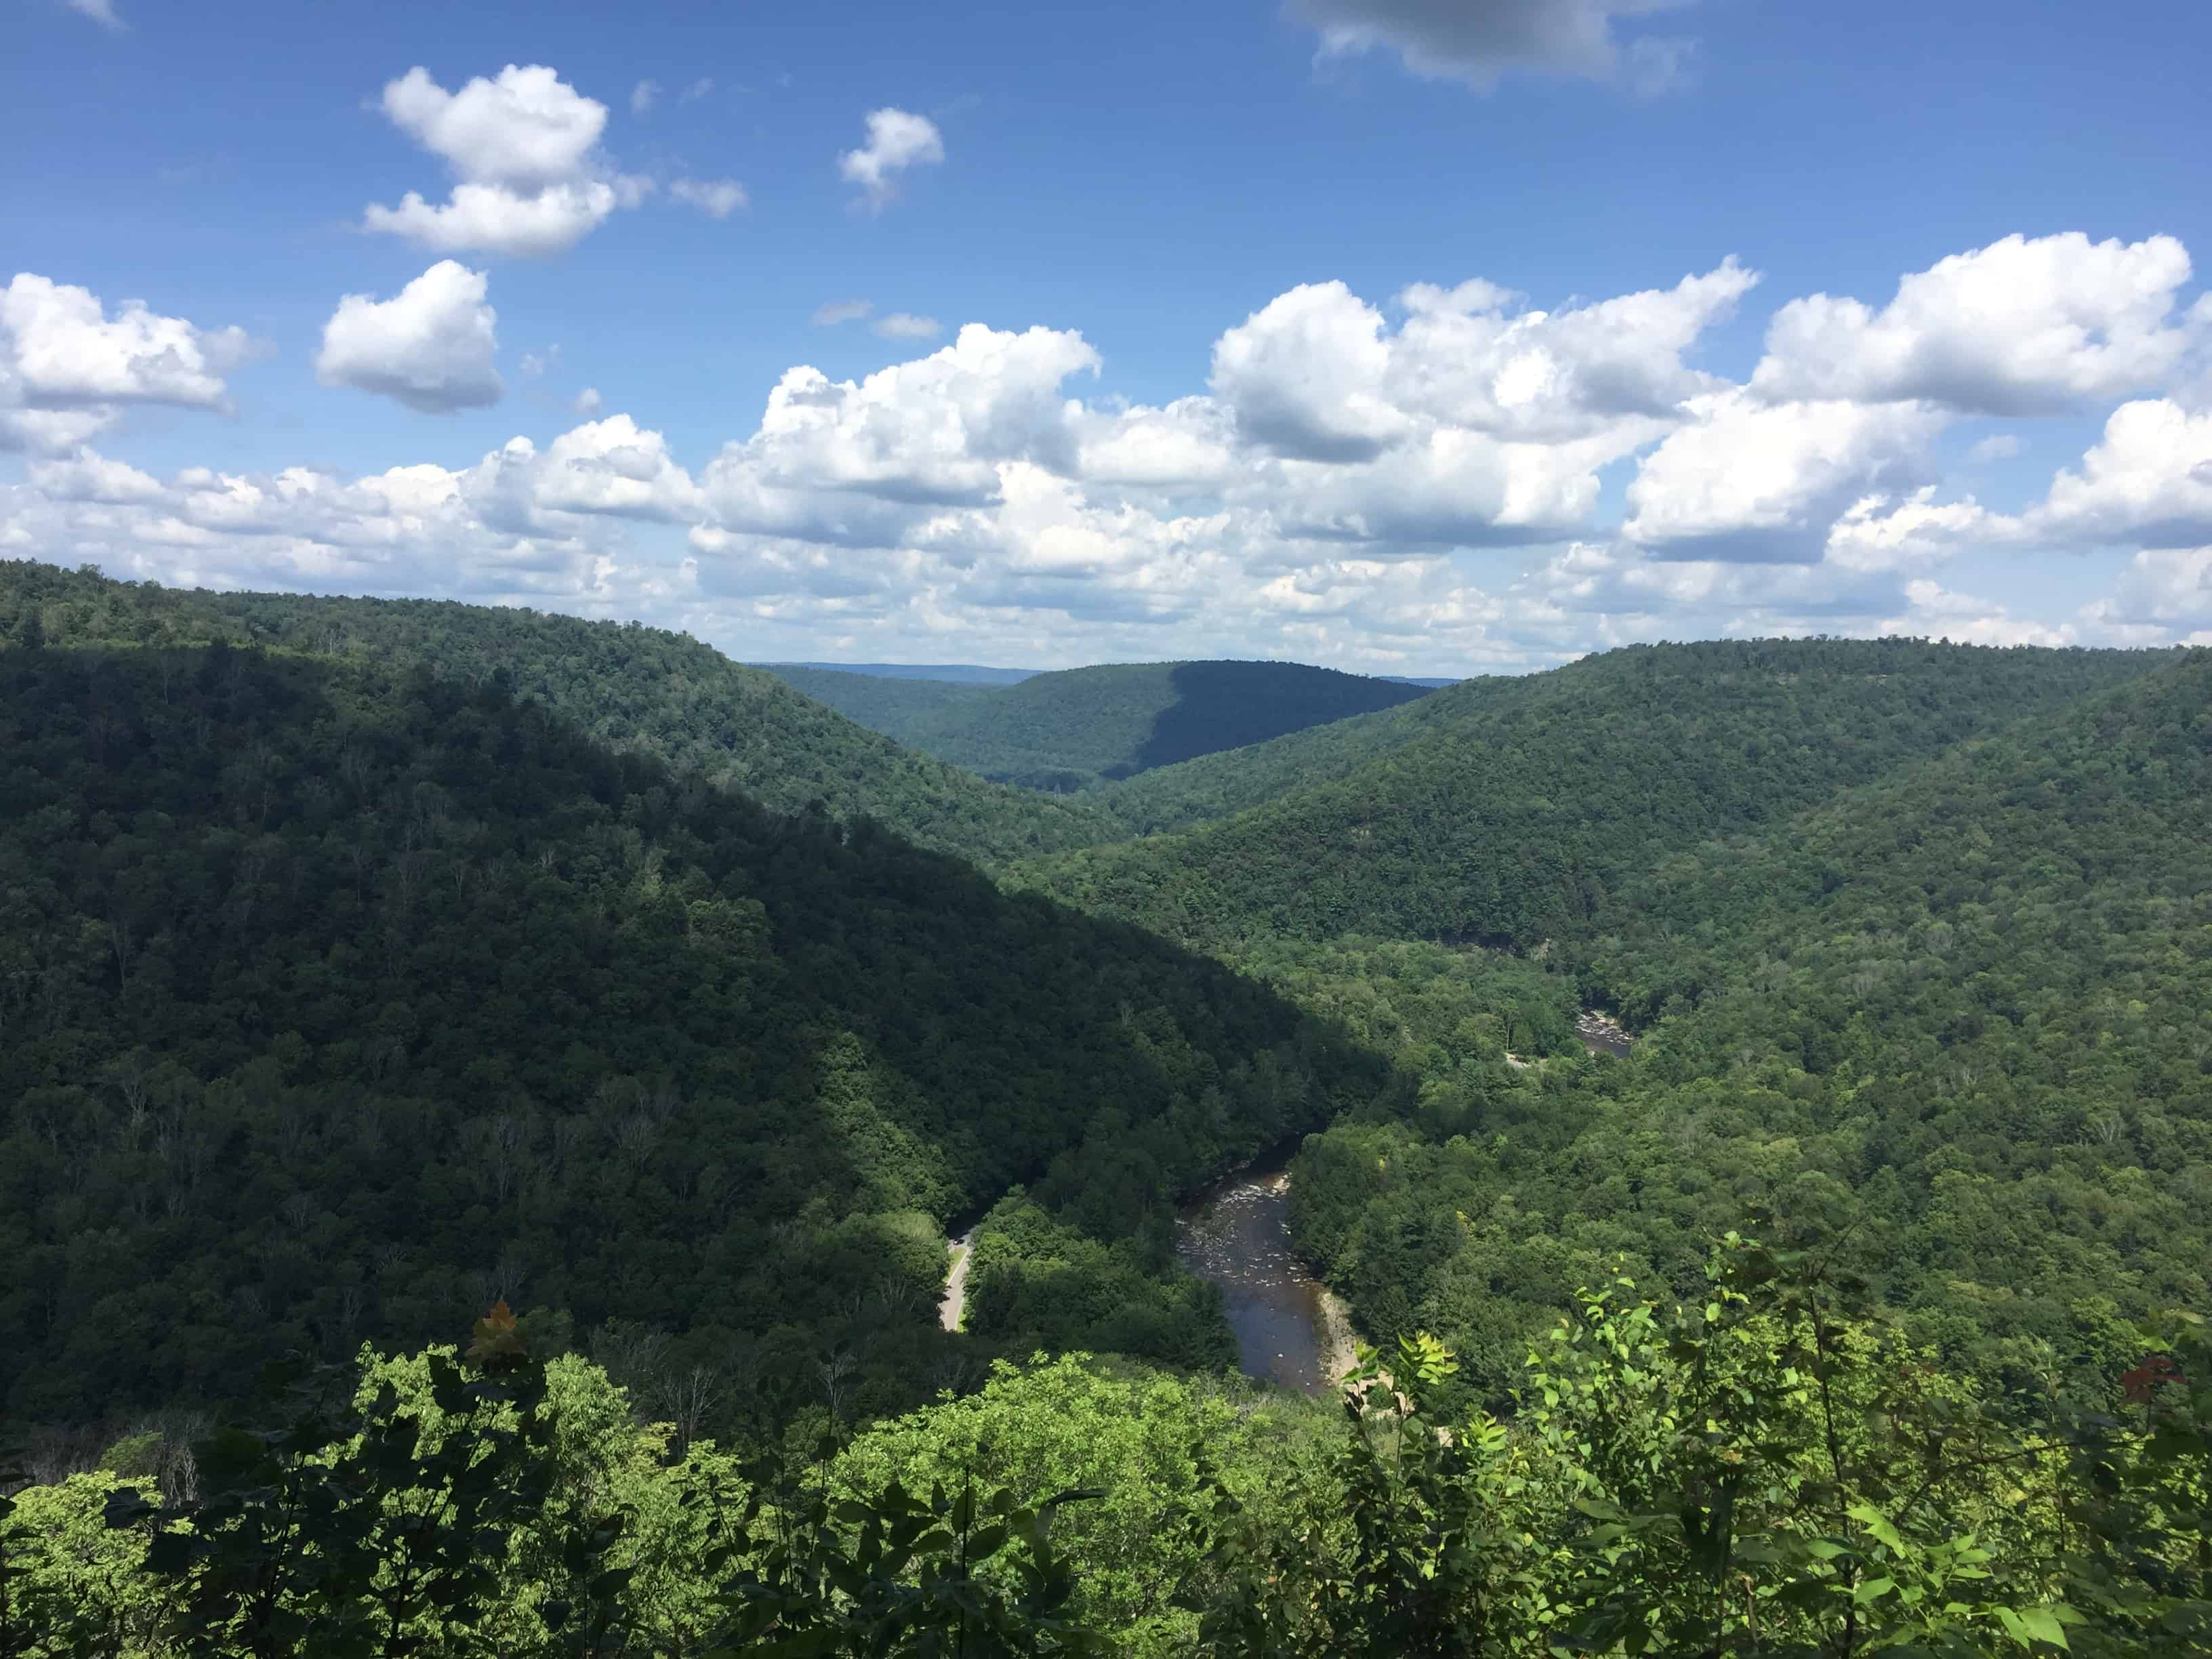 worlds end state park pennsylvania landscape